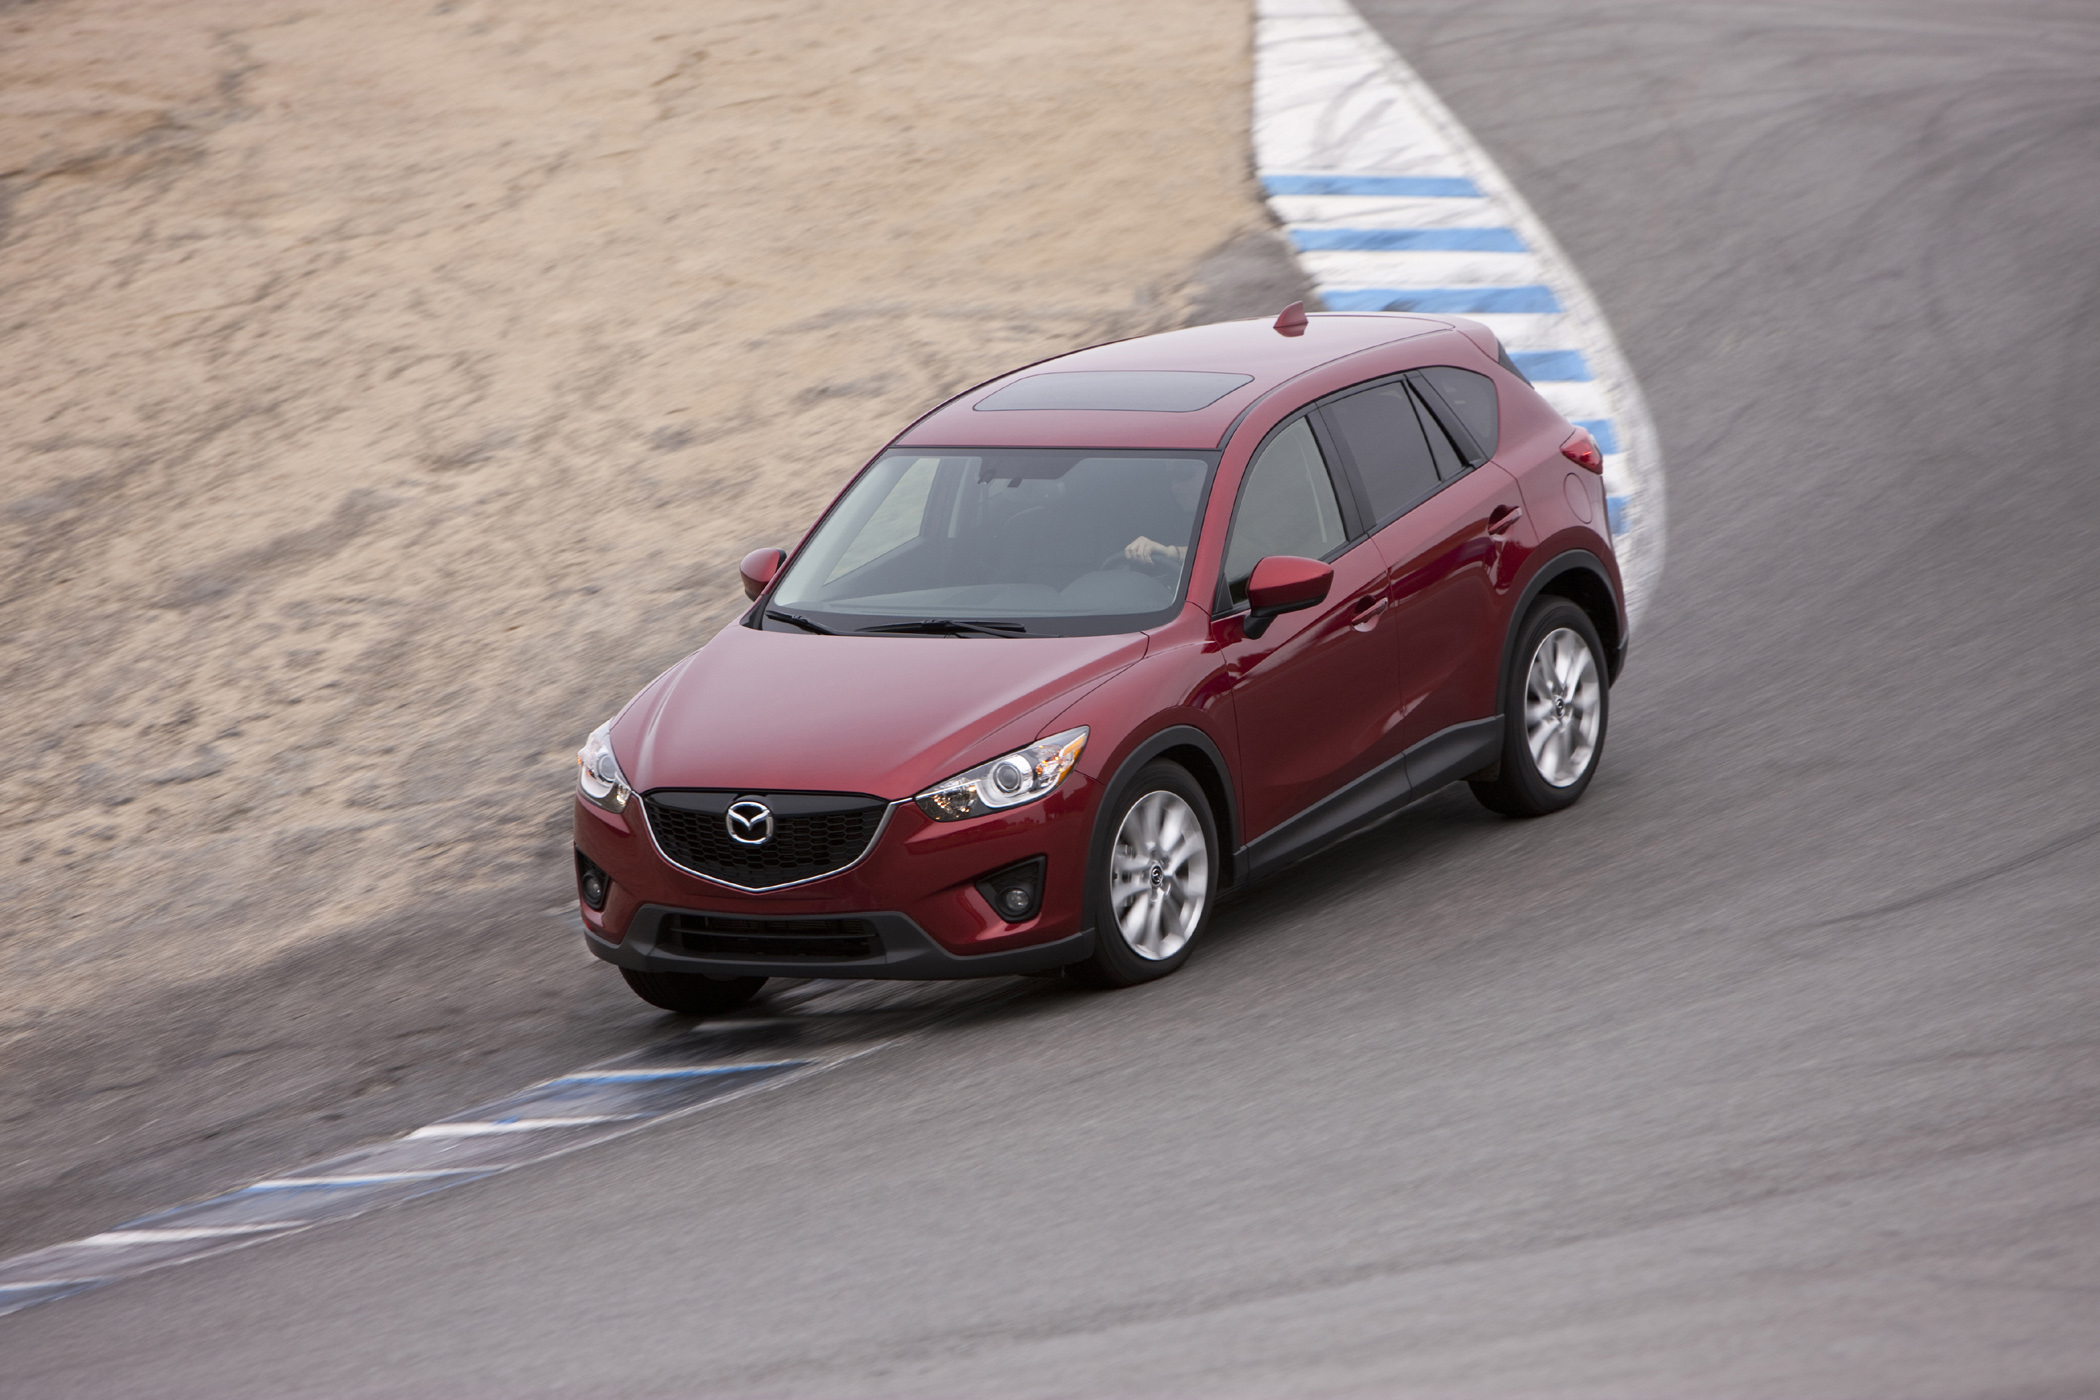 2013 mazda cx-5 compact crossover suv gets 35 mpg - new on wheels